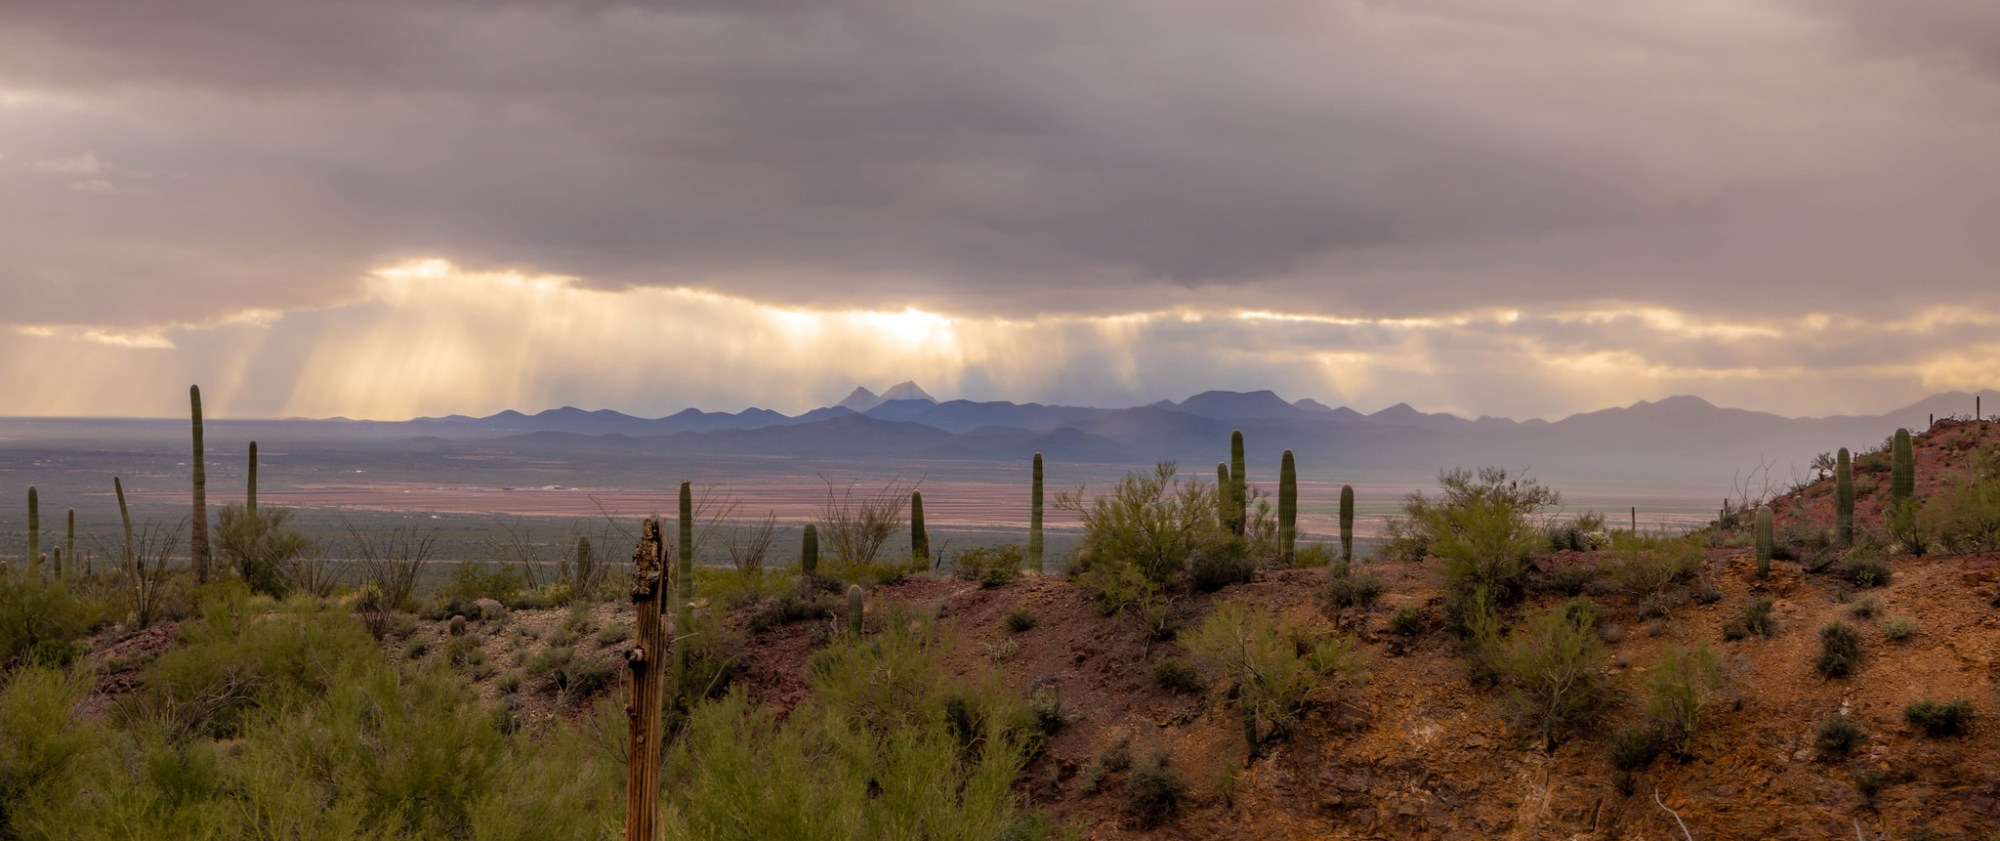 12.24. Saguaro National Park